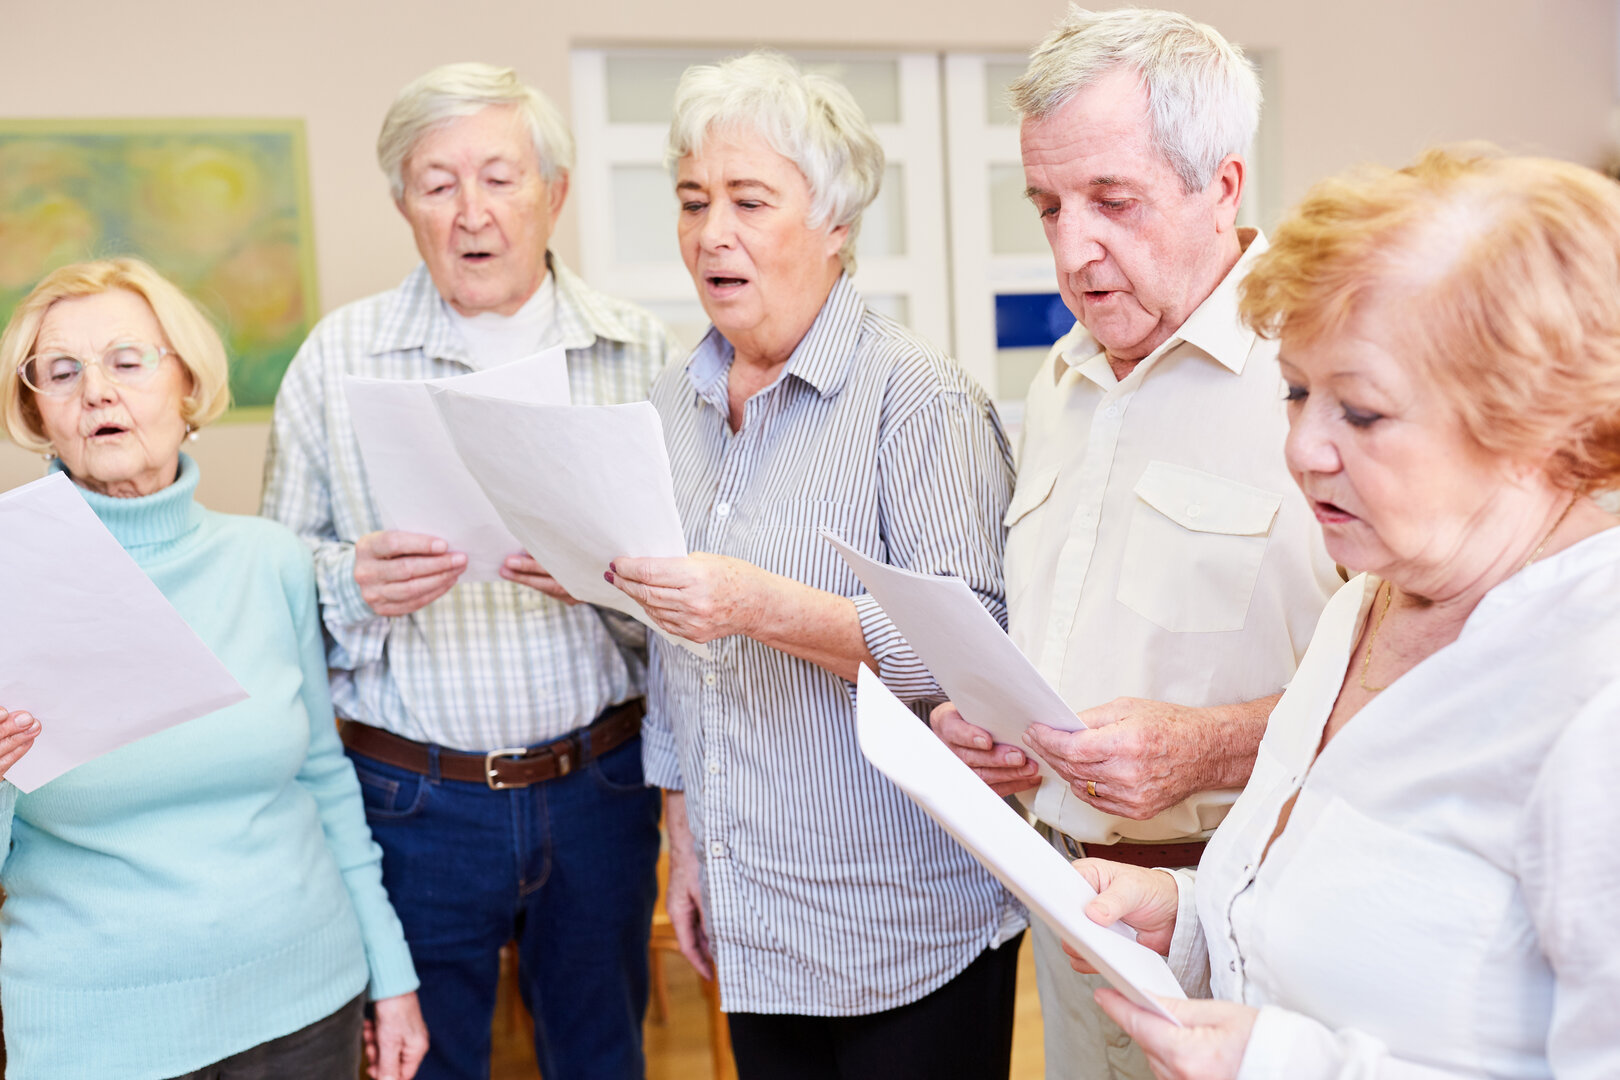 Seniors group sings together in a choir in their free time or as a dementia therapy